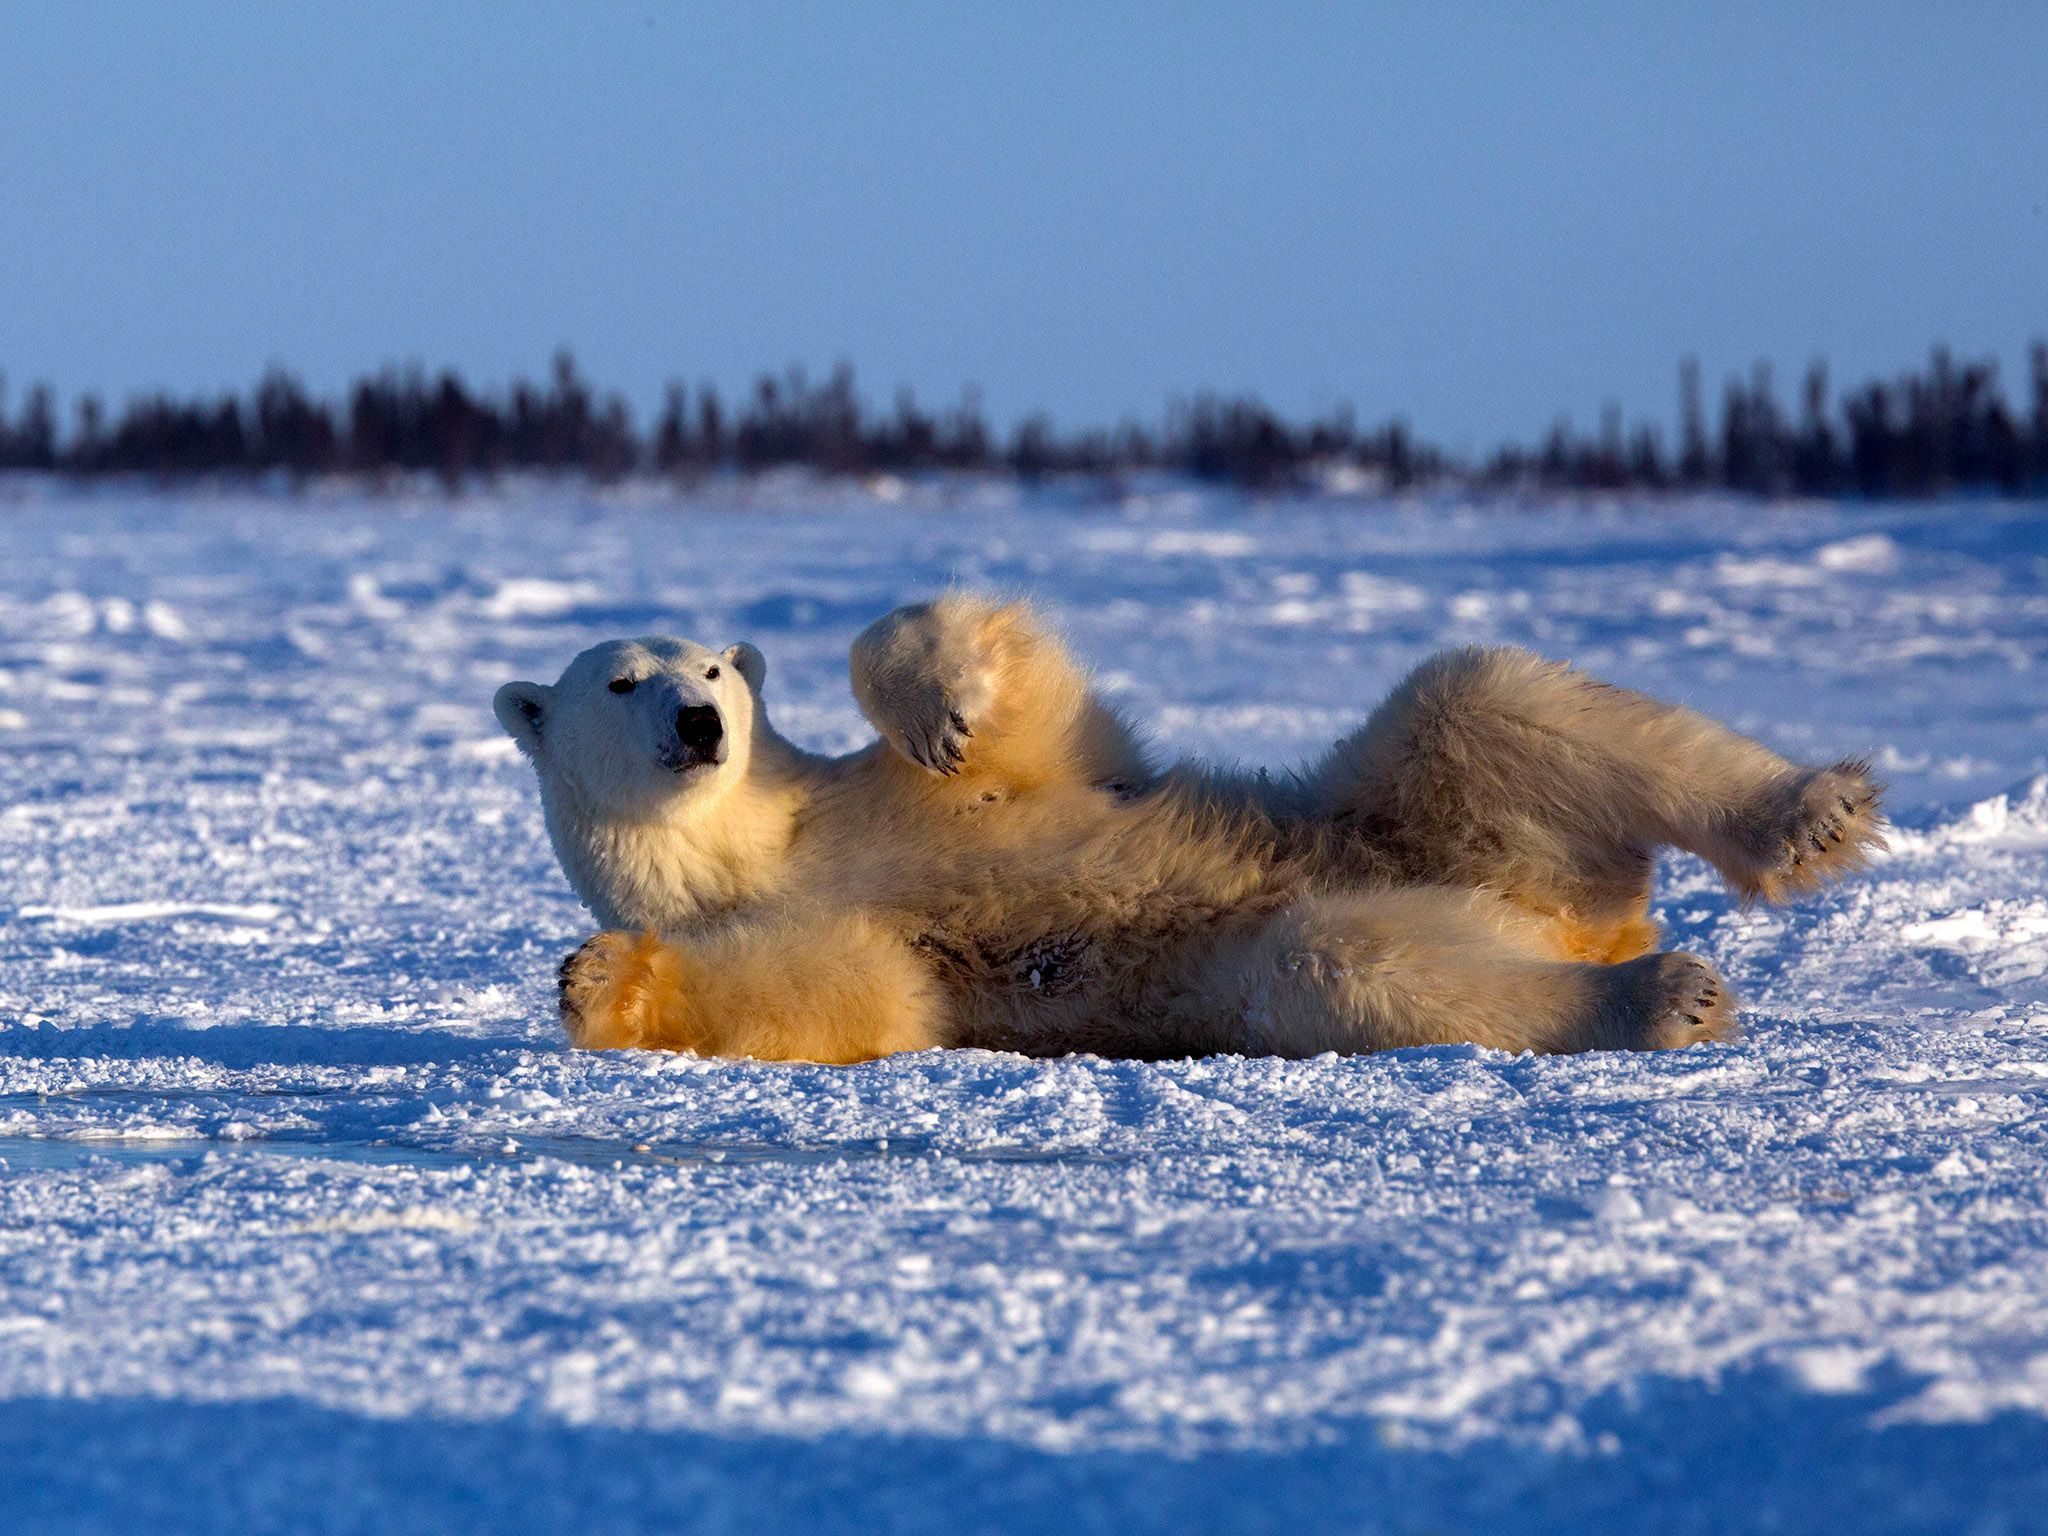 Mother polar bear rolling in snow. This image is from Wild Canada. [Photo of the day - اکتوبر 2014]